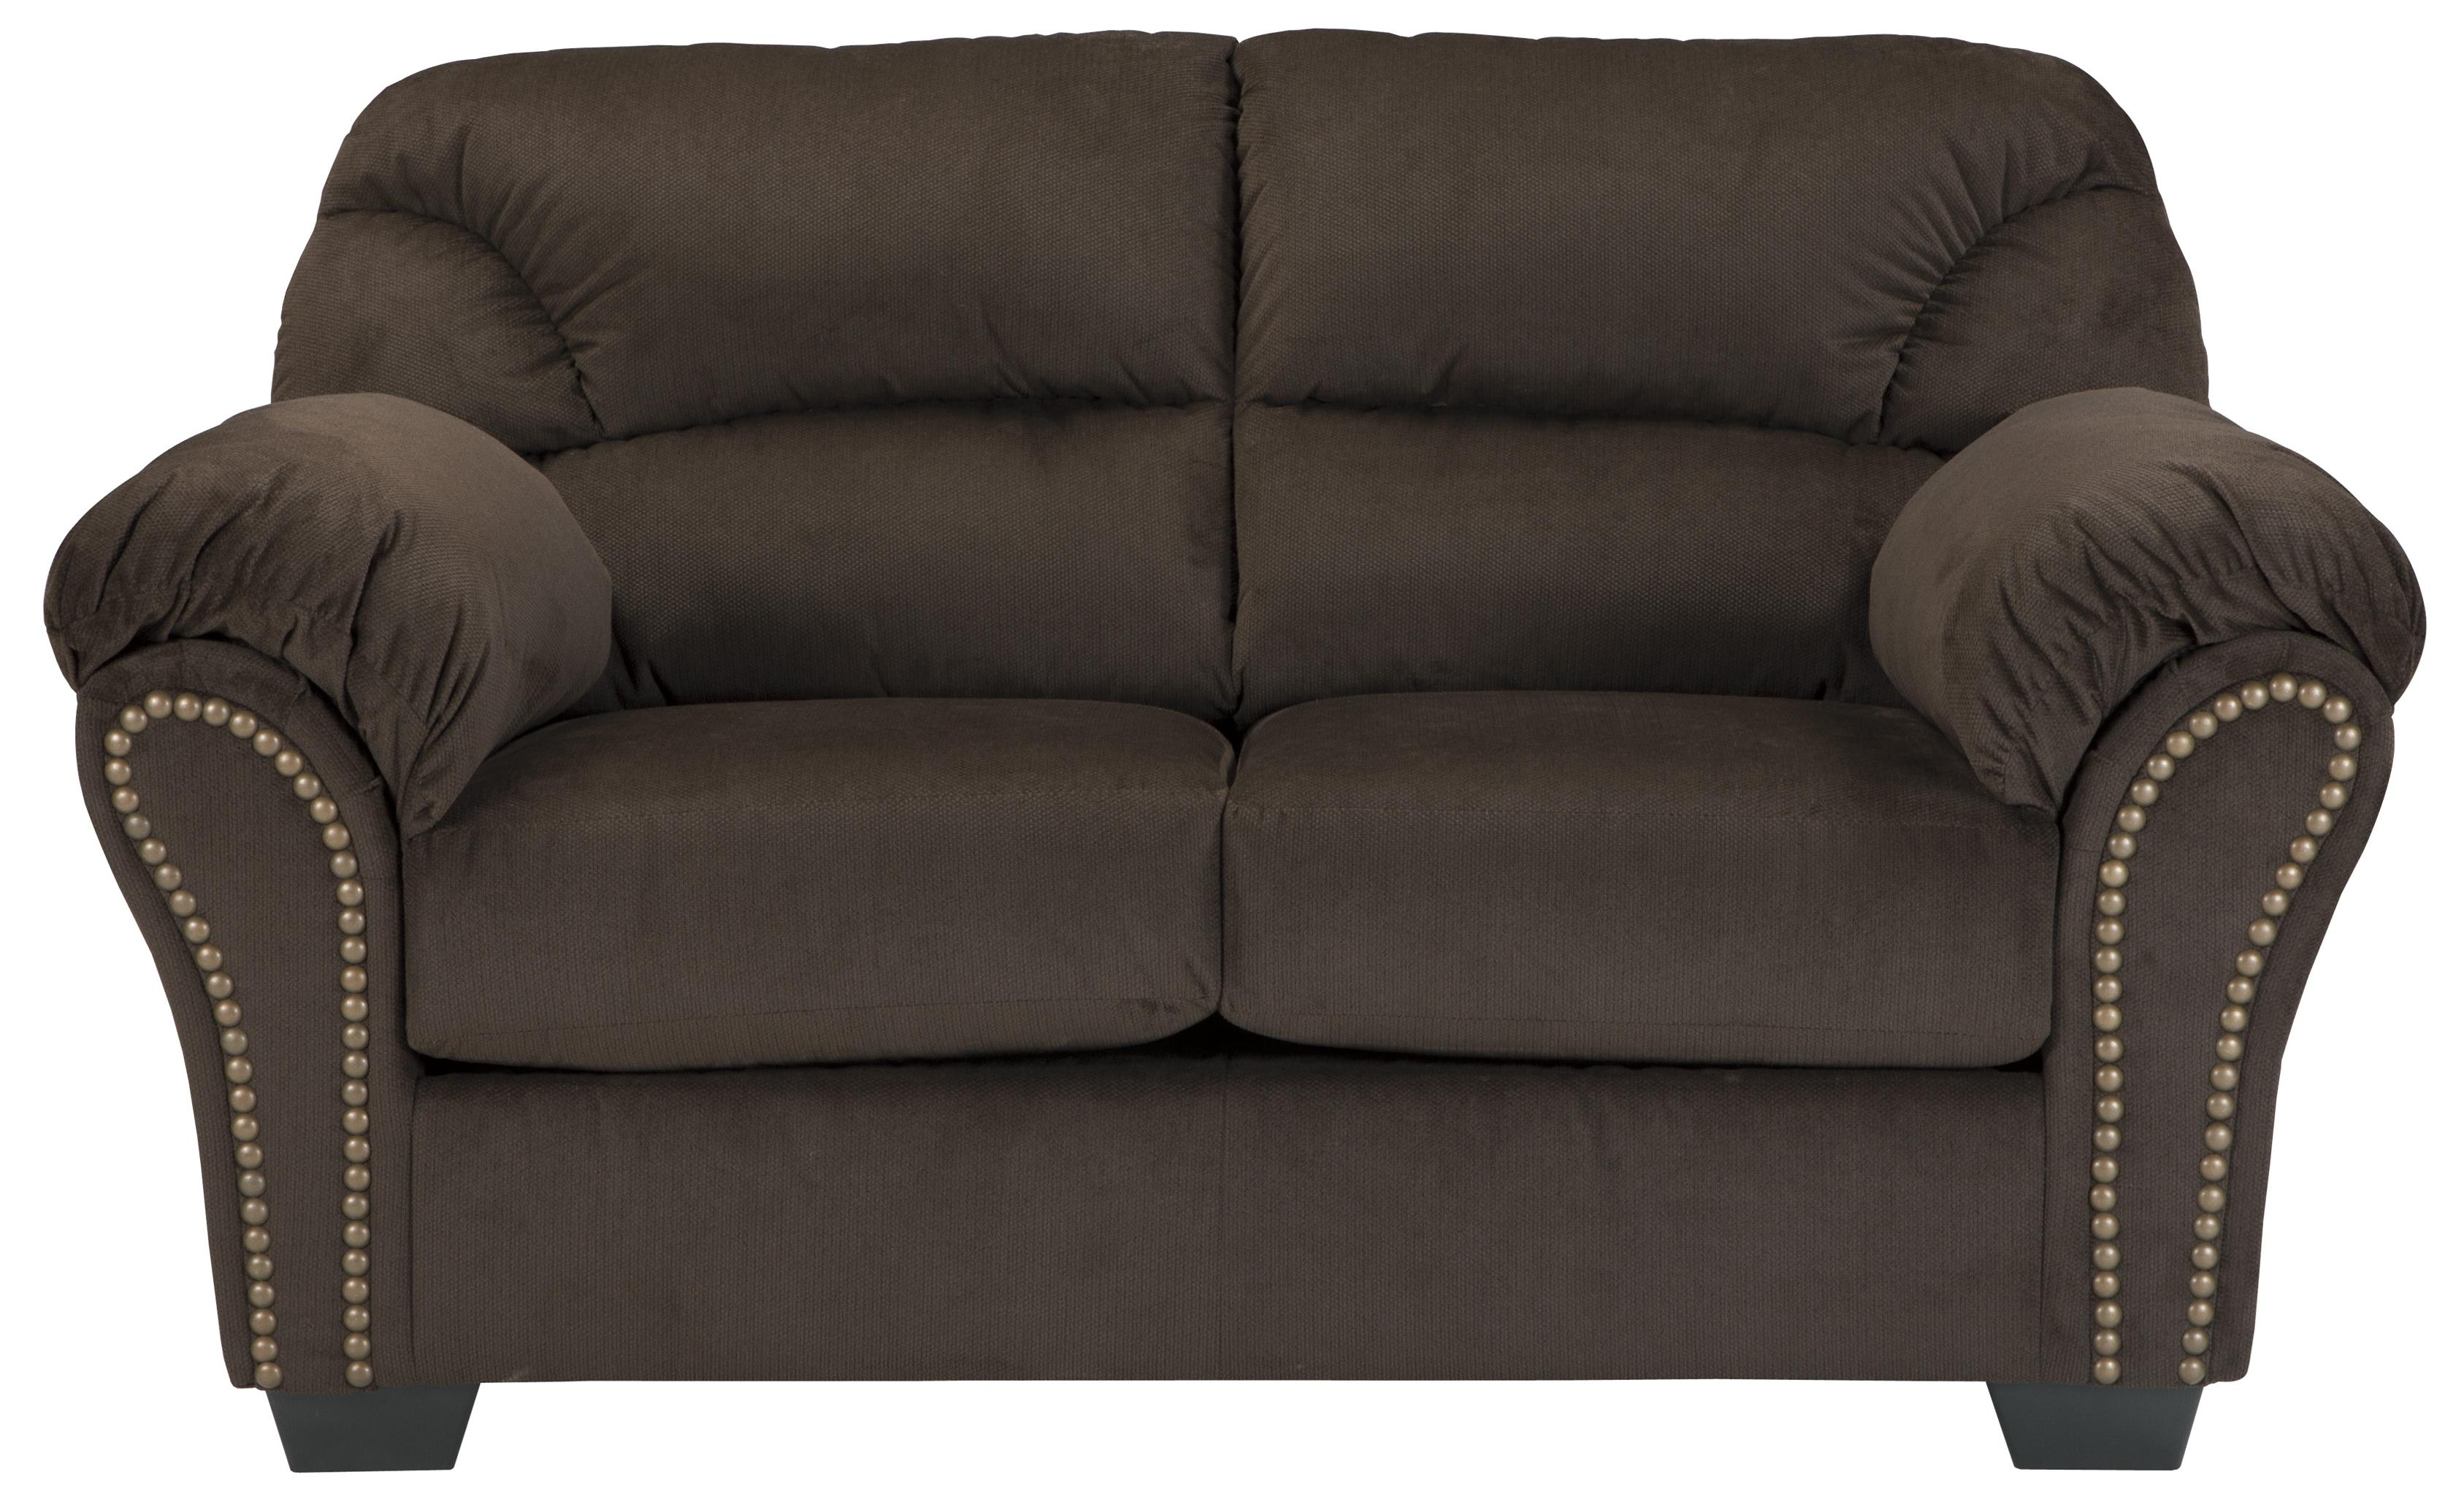 Signature Design by Ashley Kinlock Loveseat - Item Number: 3340135